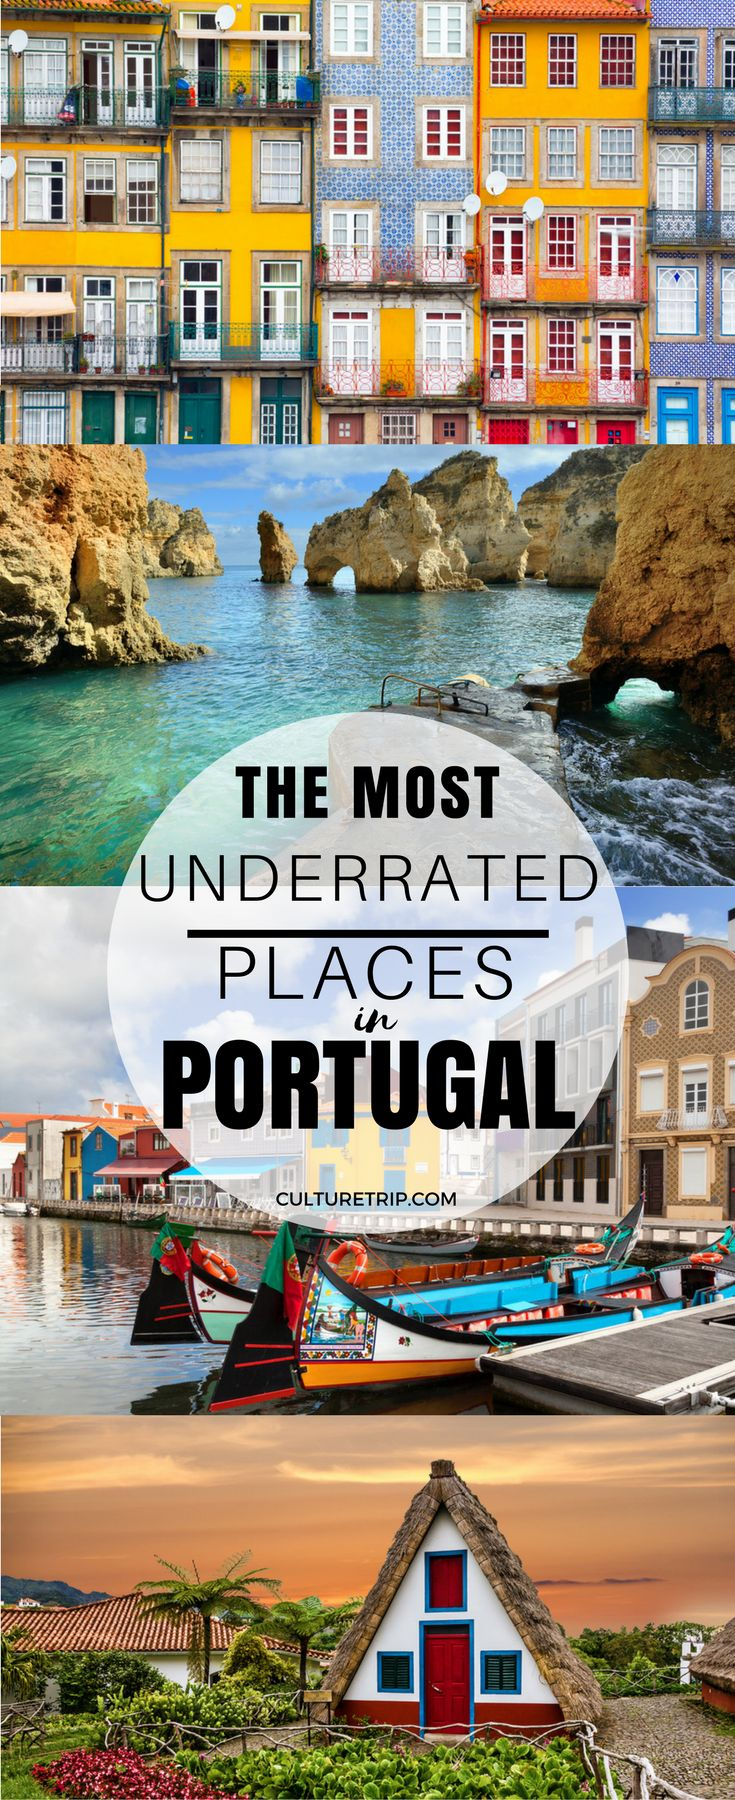 Best HIDDEN GEMS Images On Pinterest Graduation Nature And - The 11 most beautiful and underrated destinations in western europe